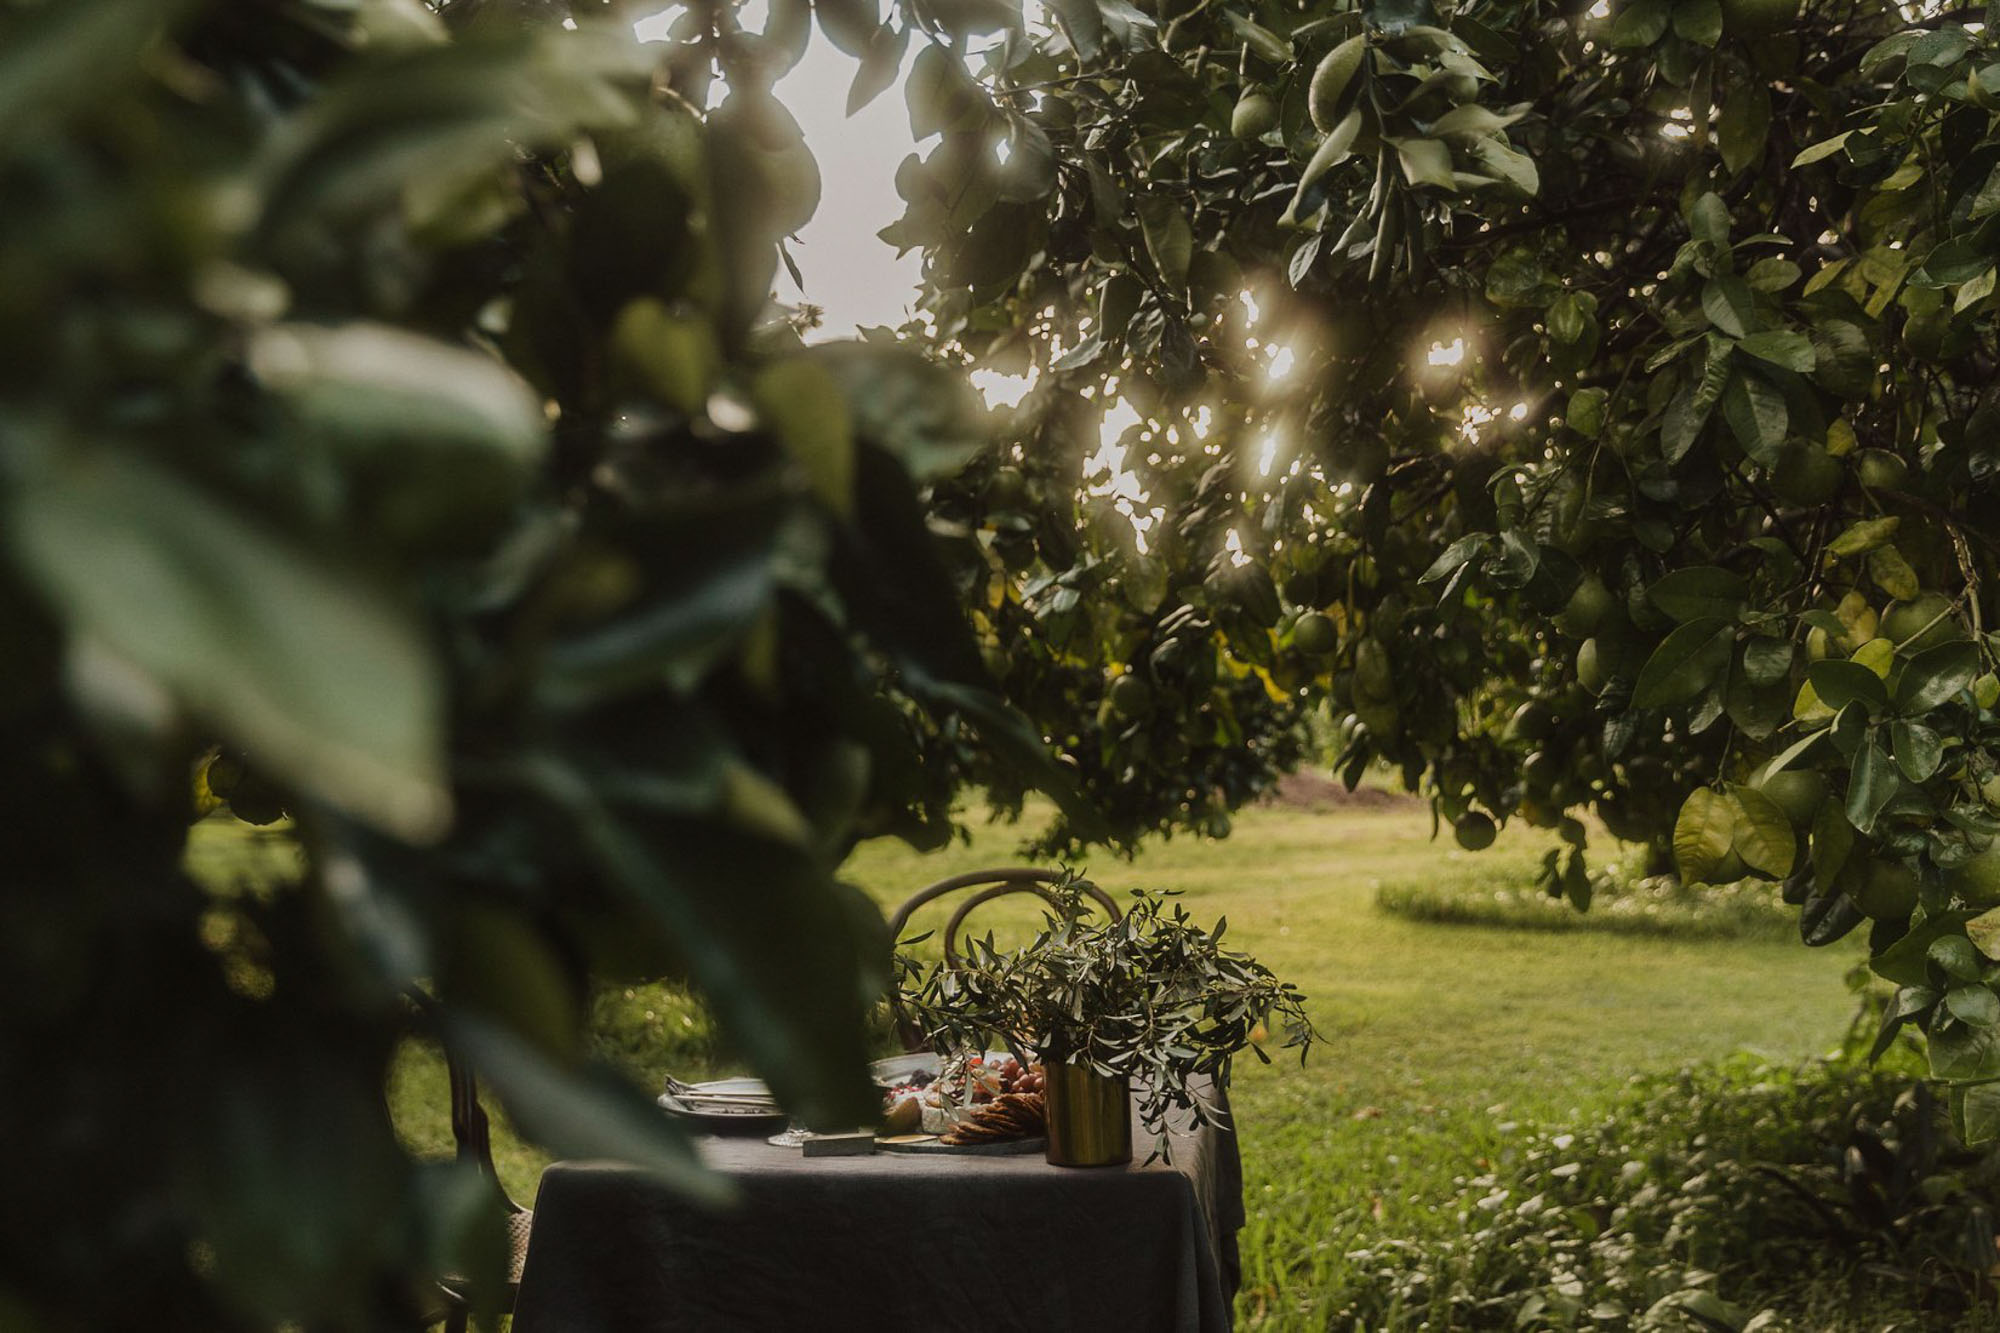 Styled Photshoot - Orchard Picnic Cairns  - Event Styling and Catering by The Collection Co-5.jpg